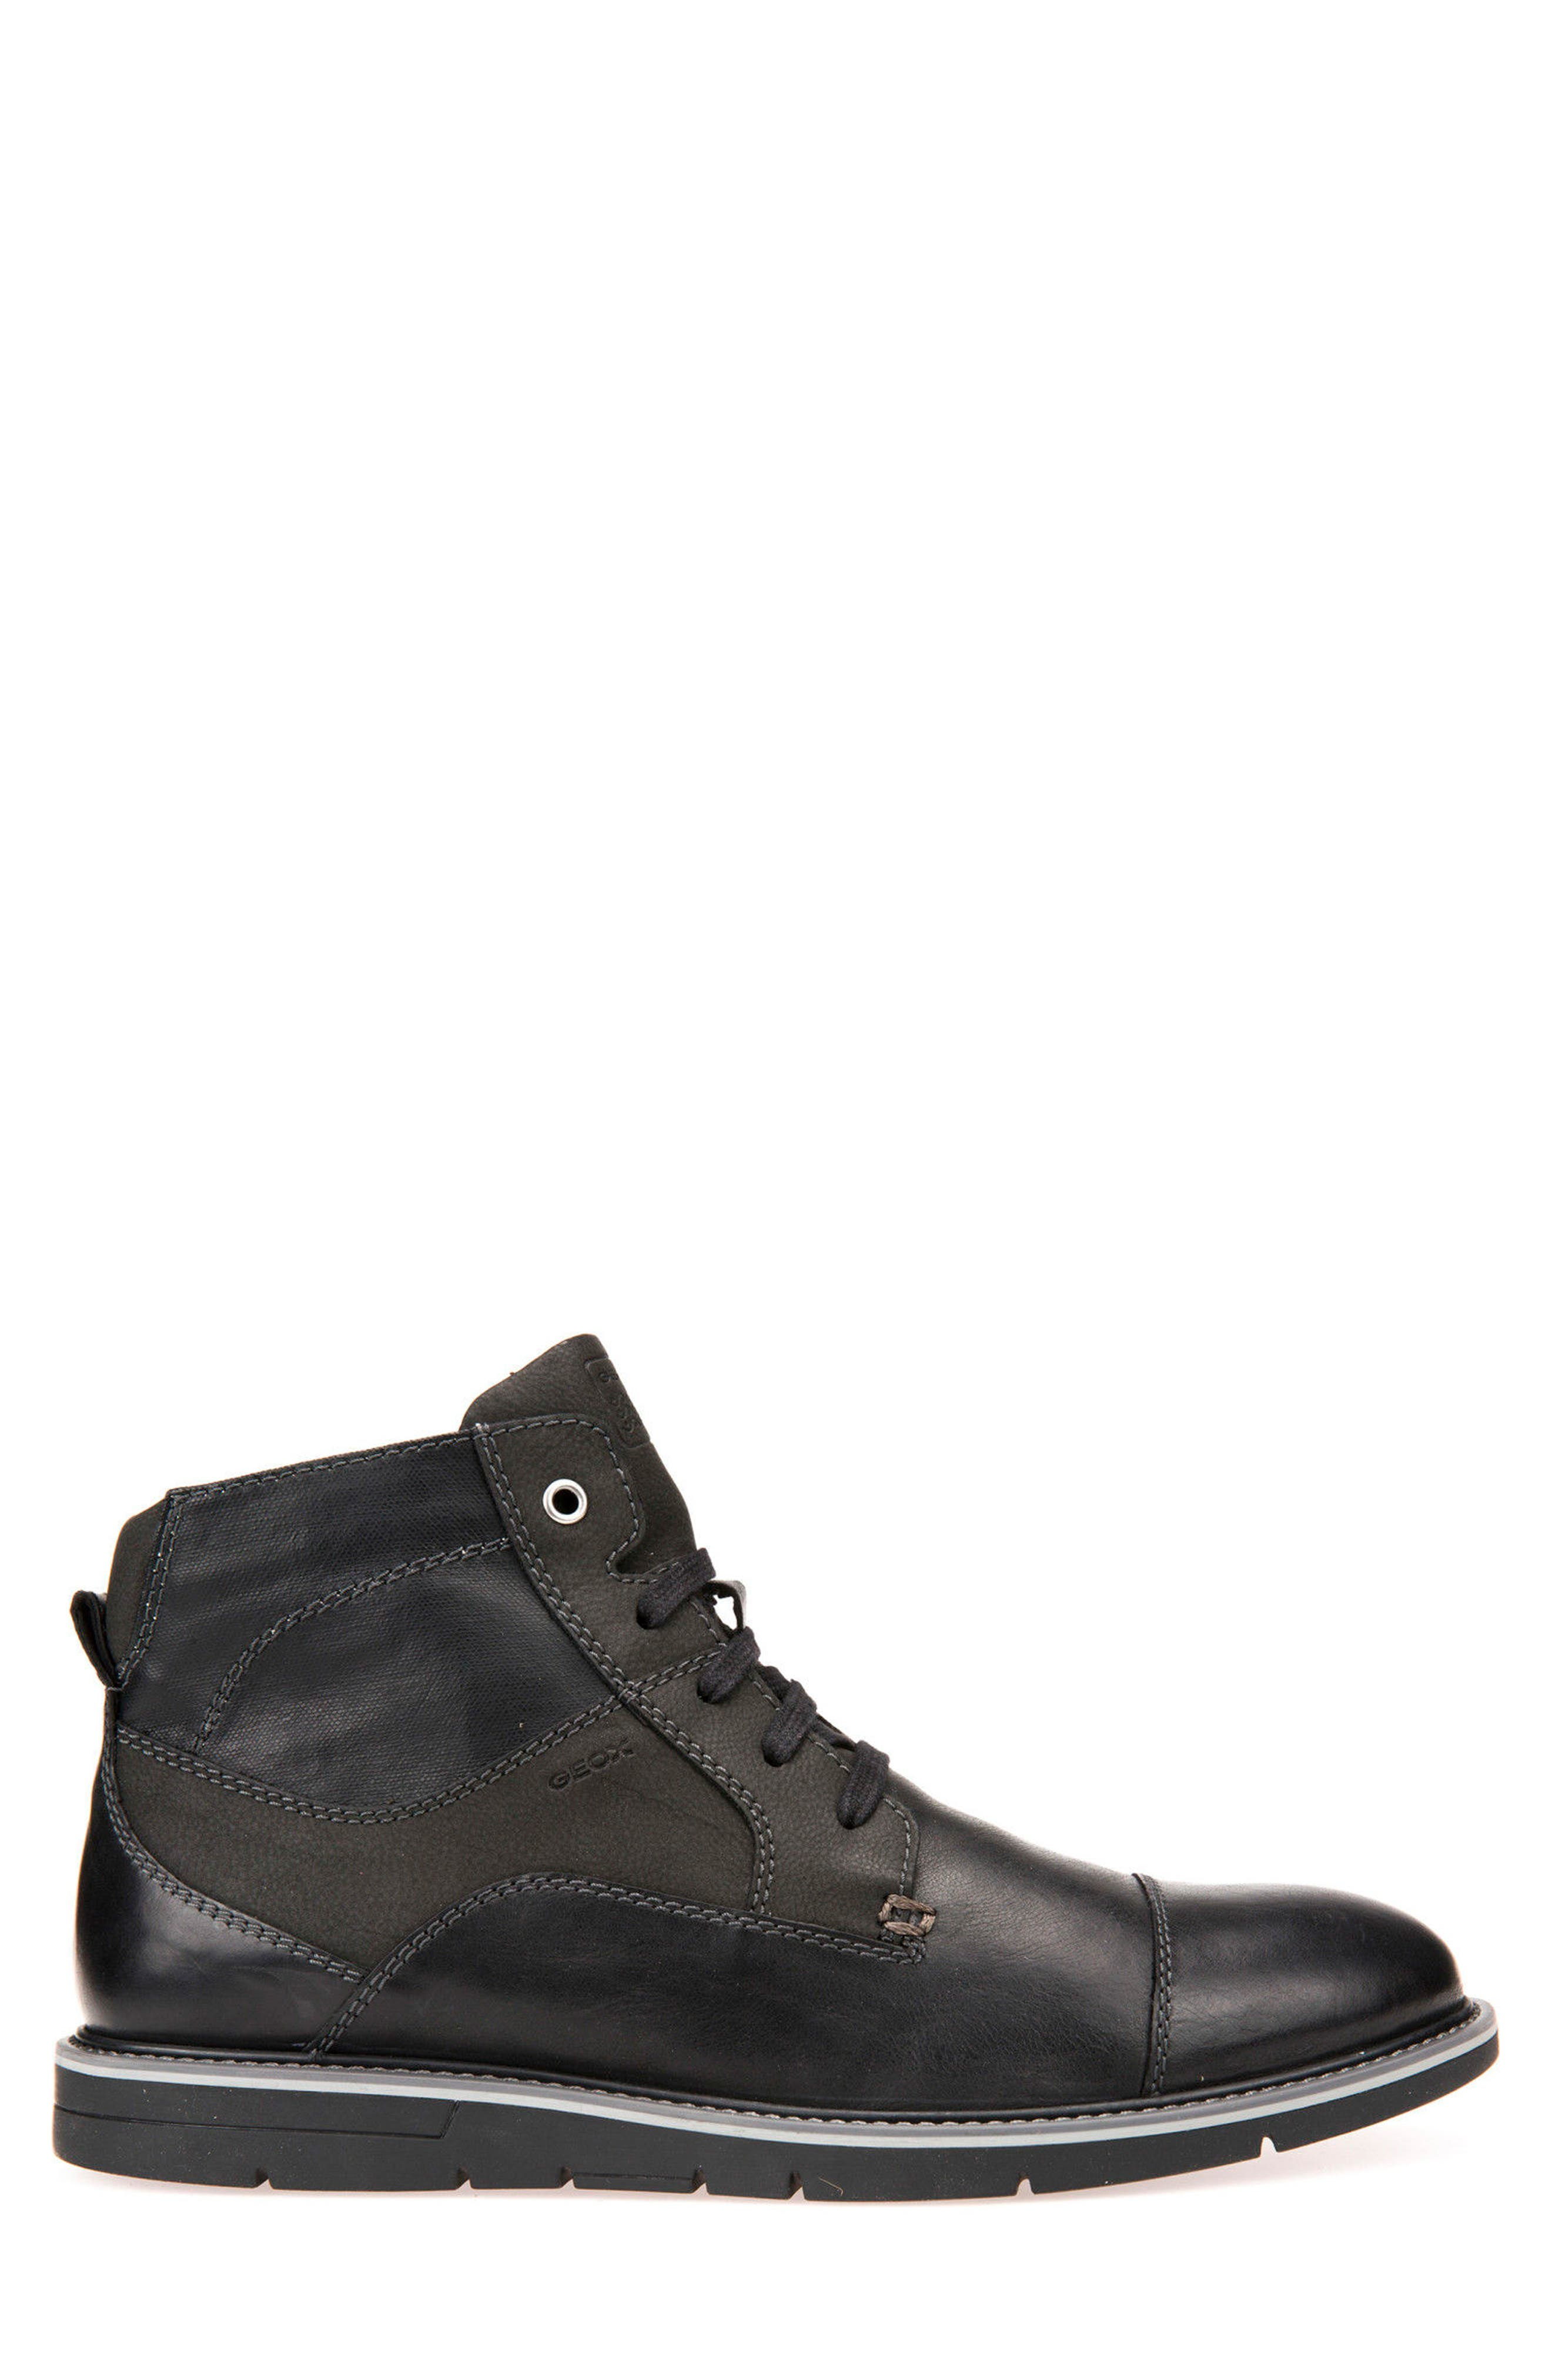 Muvet 5 Cap Toe Boot,                             Alternate thumbnail 3, color,                             001